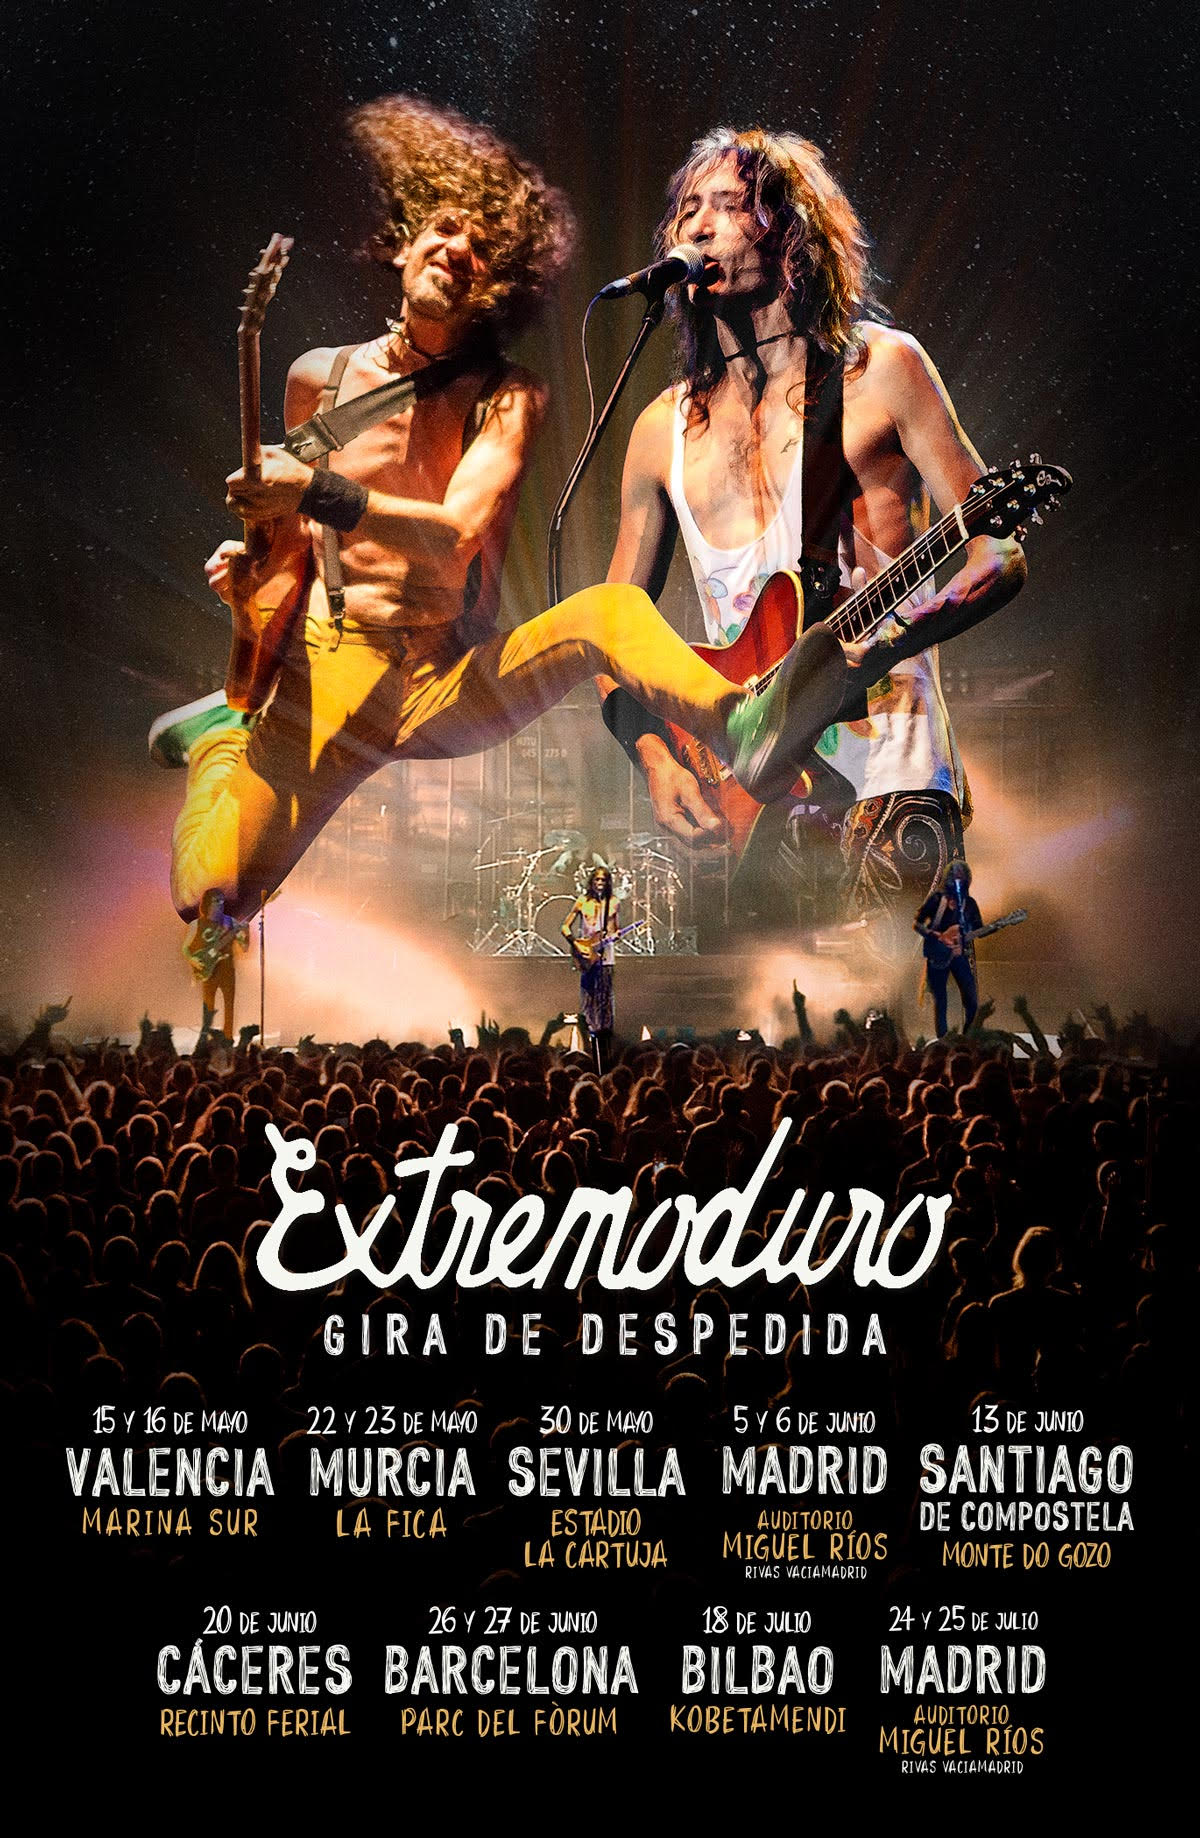 Extremoduro in Concert by Gratis in Barcelona